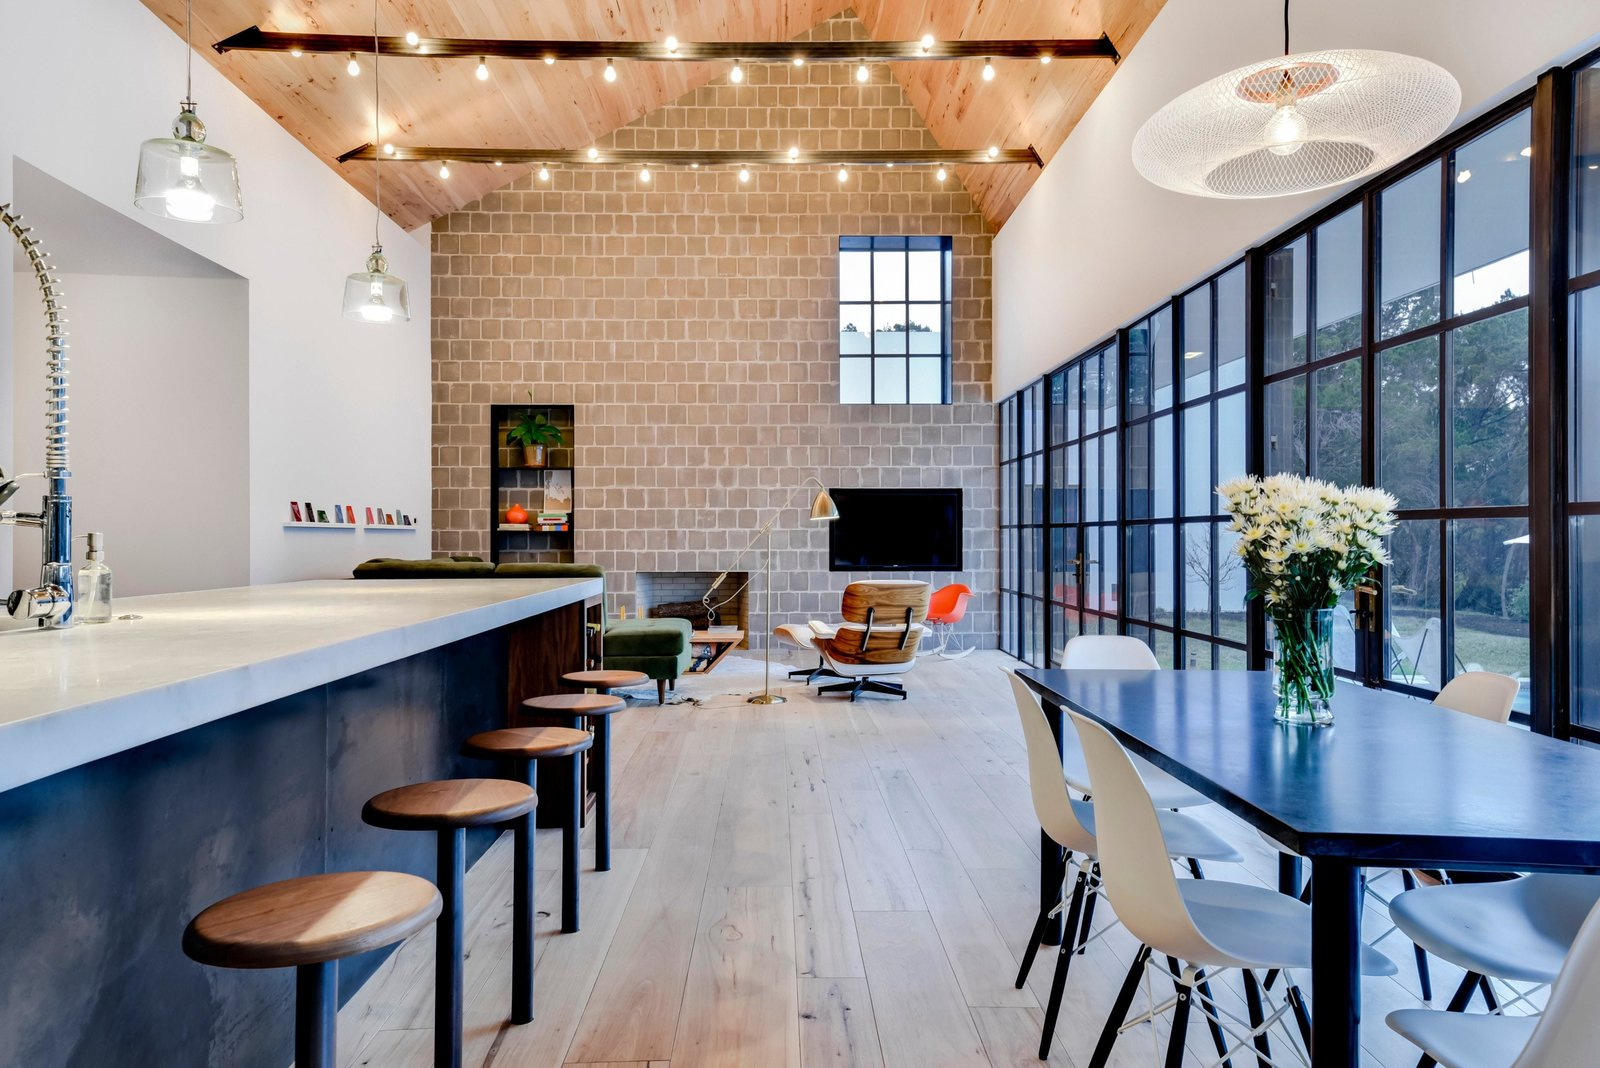 The craftsmanship integral to the experience of the house is evident in the welds of the custom steel windows, the tool marks of the waxed hot-rolled steel panel at the kitchen island, and the hand-turned walnut seats of the bar stools.